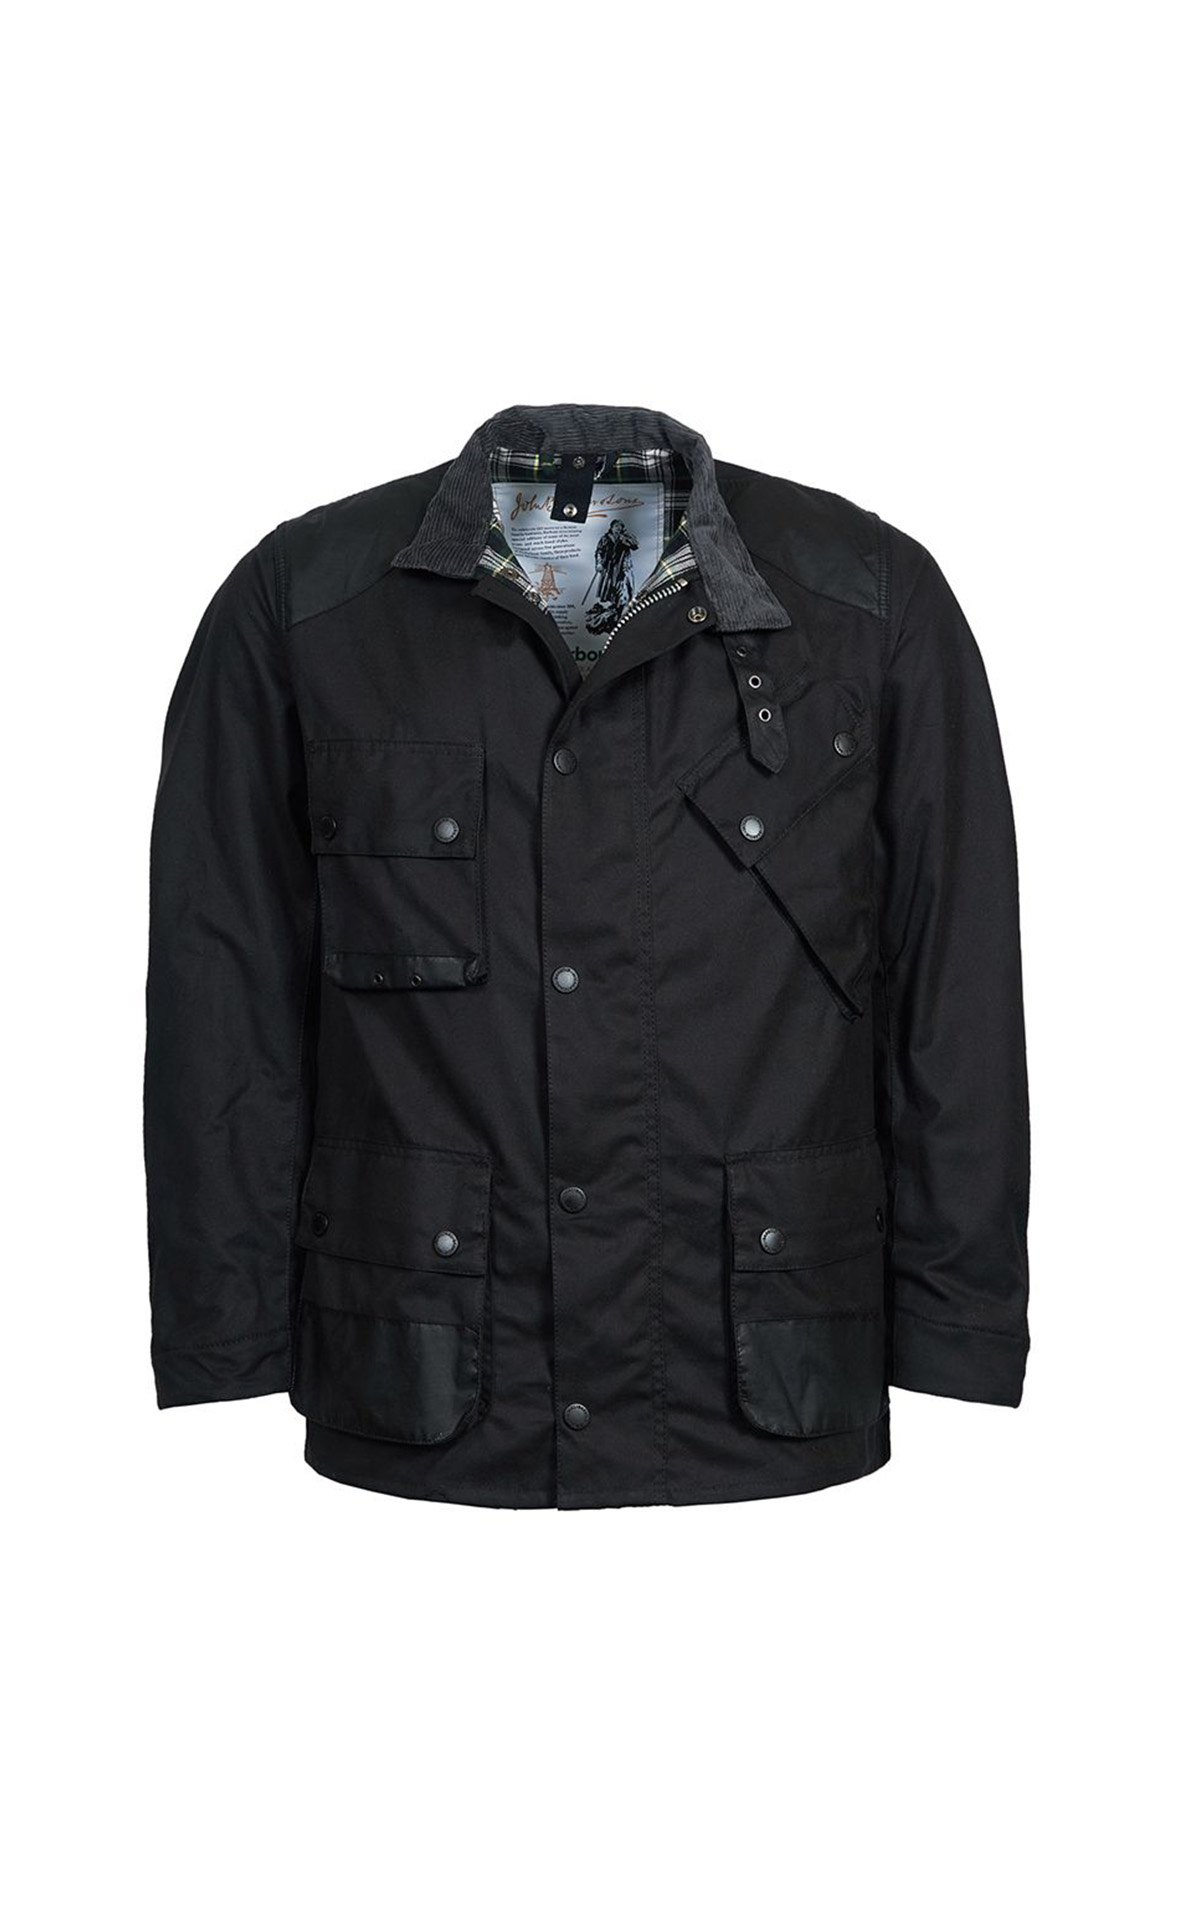 Barbour Icons international wax jacket from Bicester Village